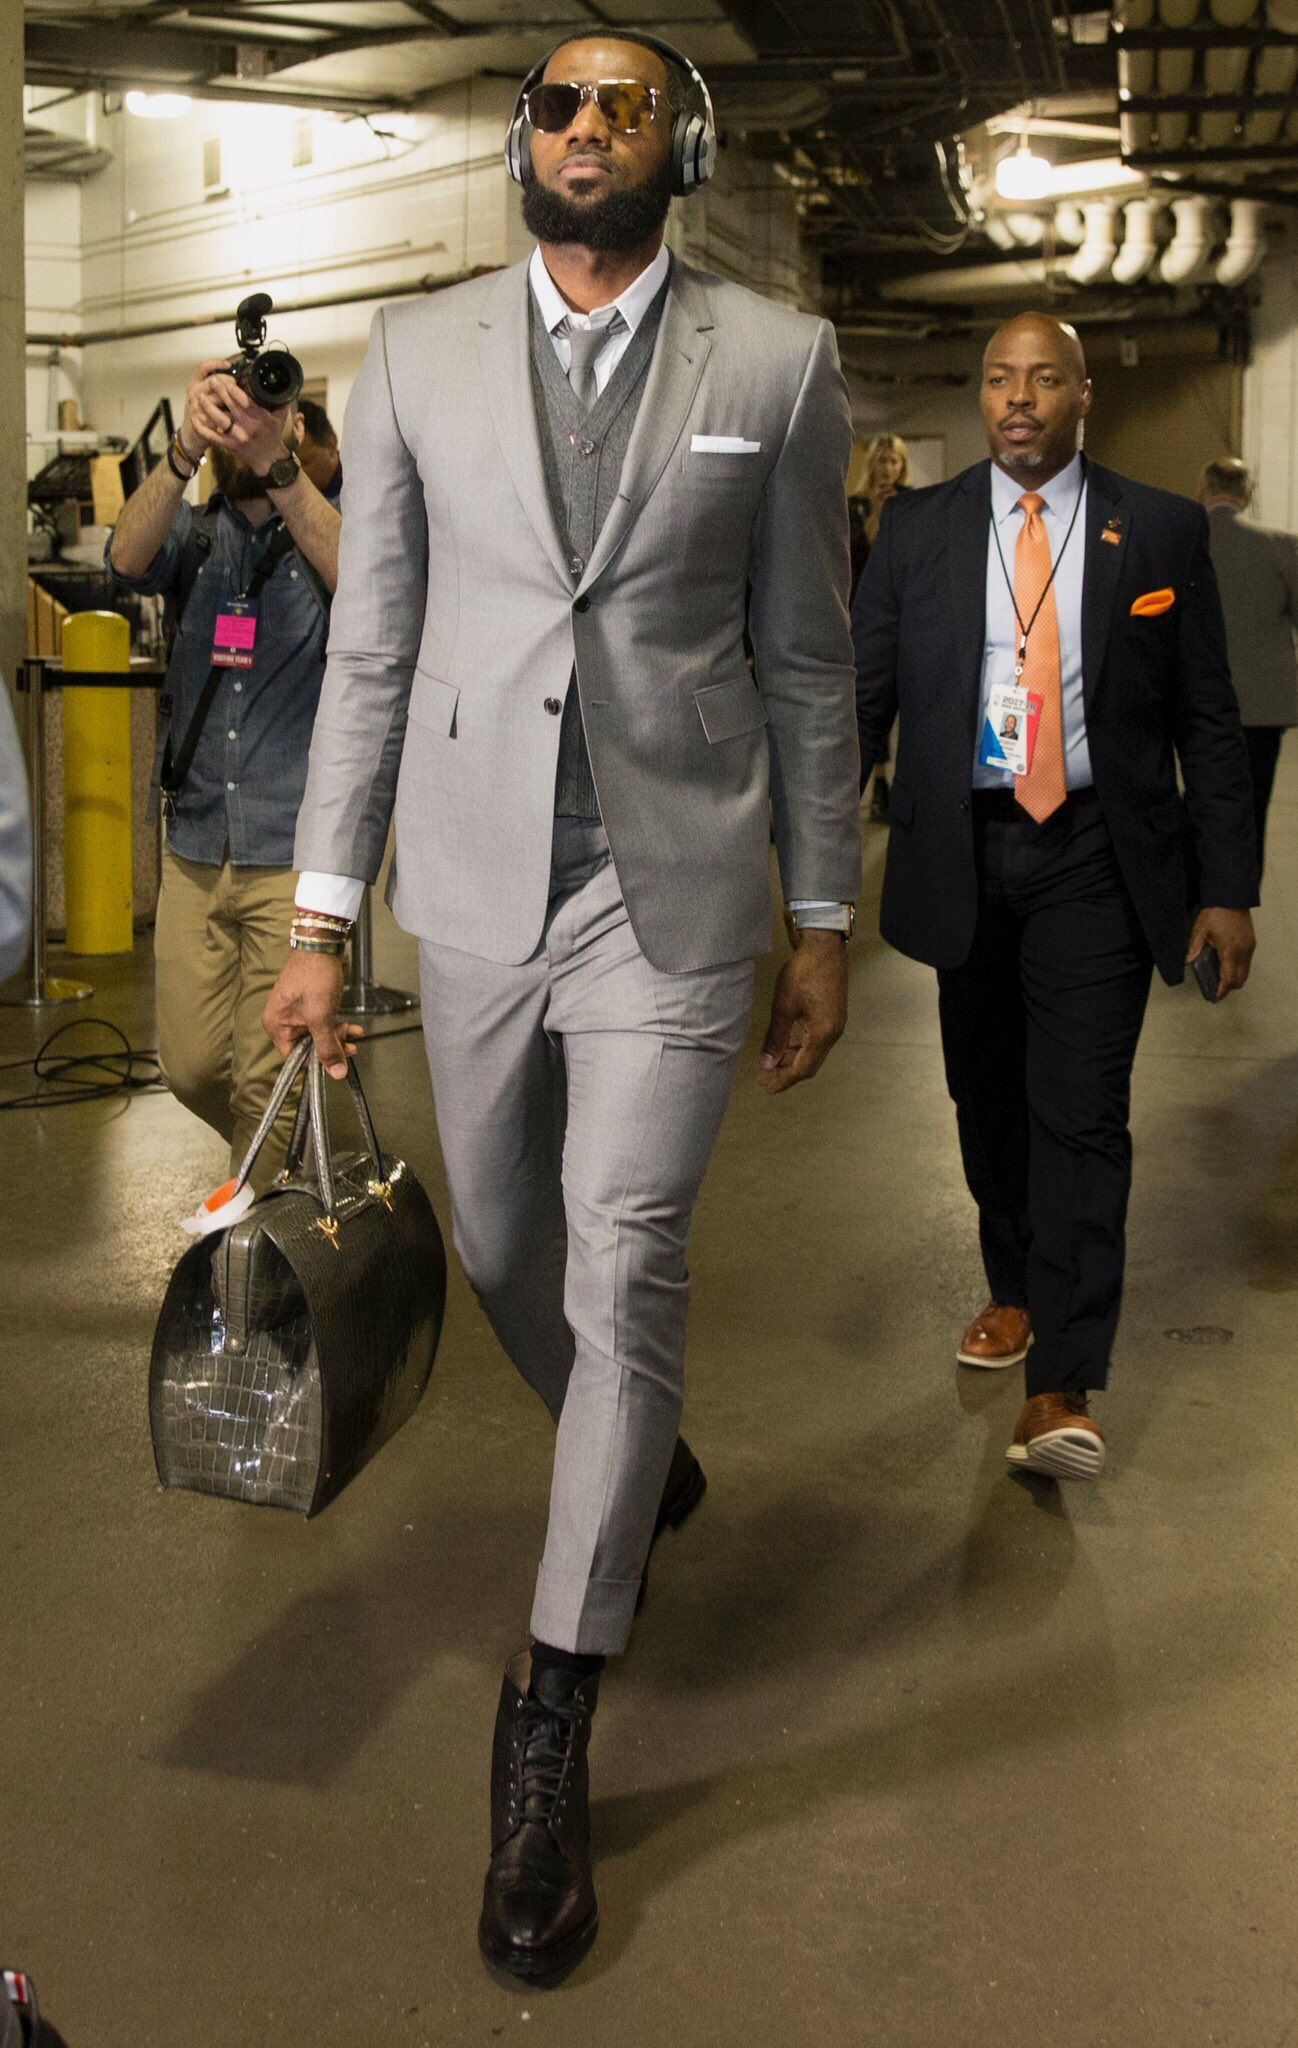 Today's @Cavs #NBAStyle! #NBAPlayoffs https://t.co/qx3TofFZEx